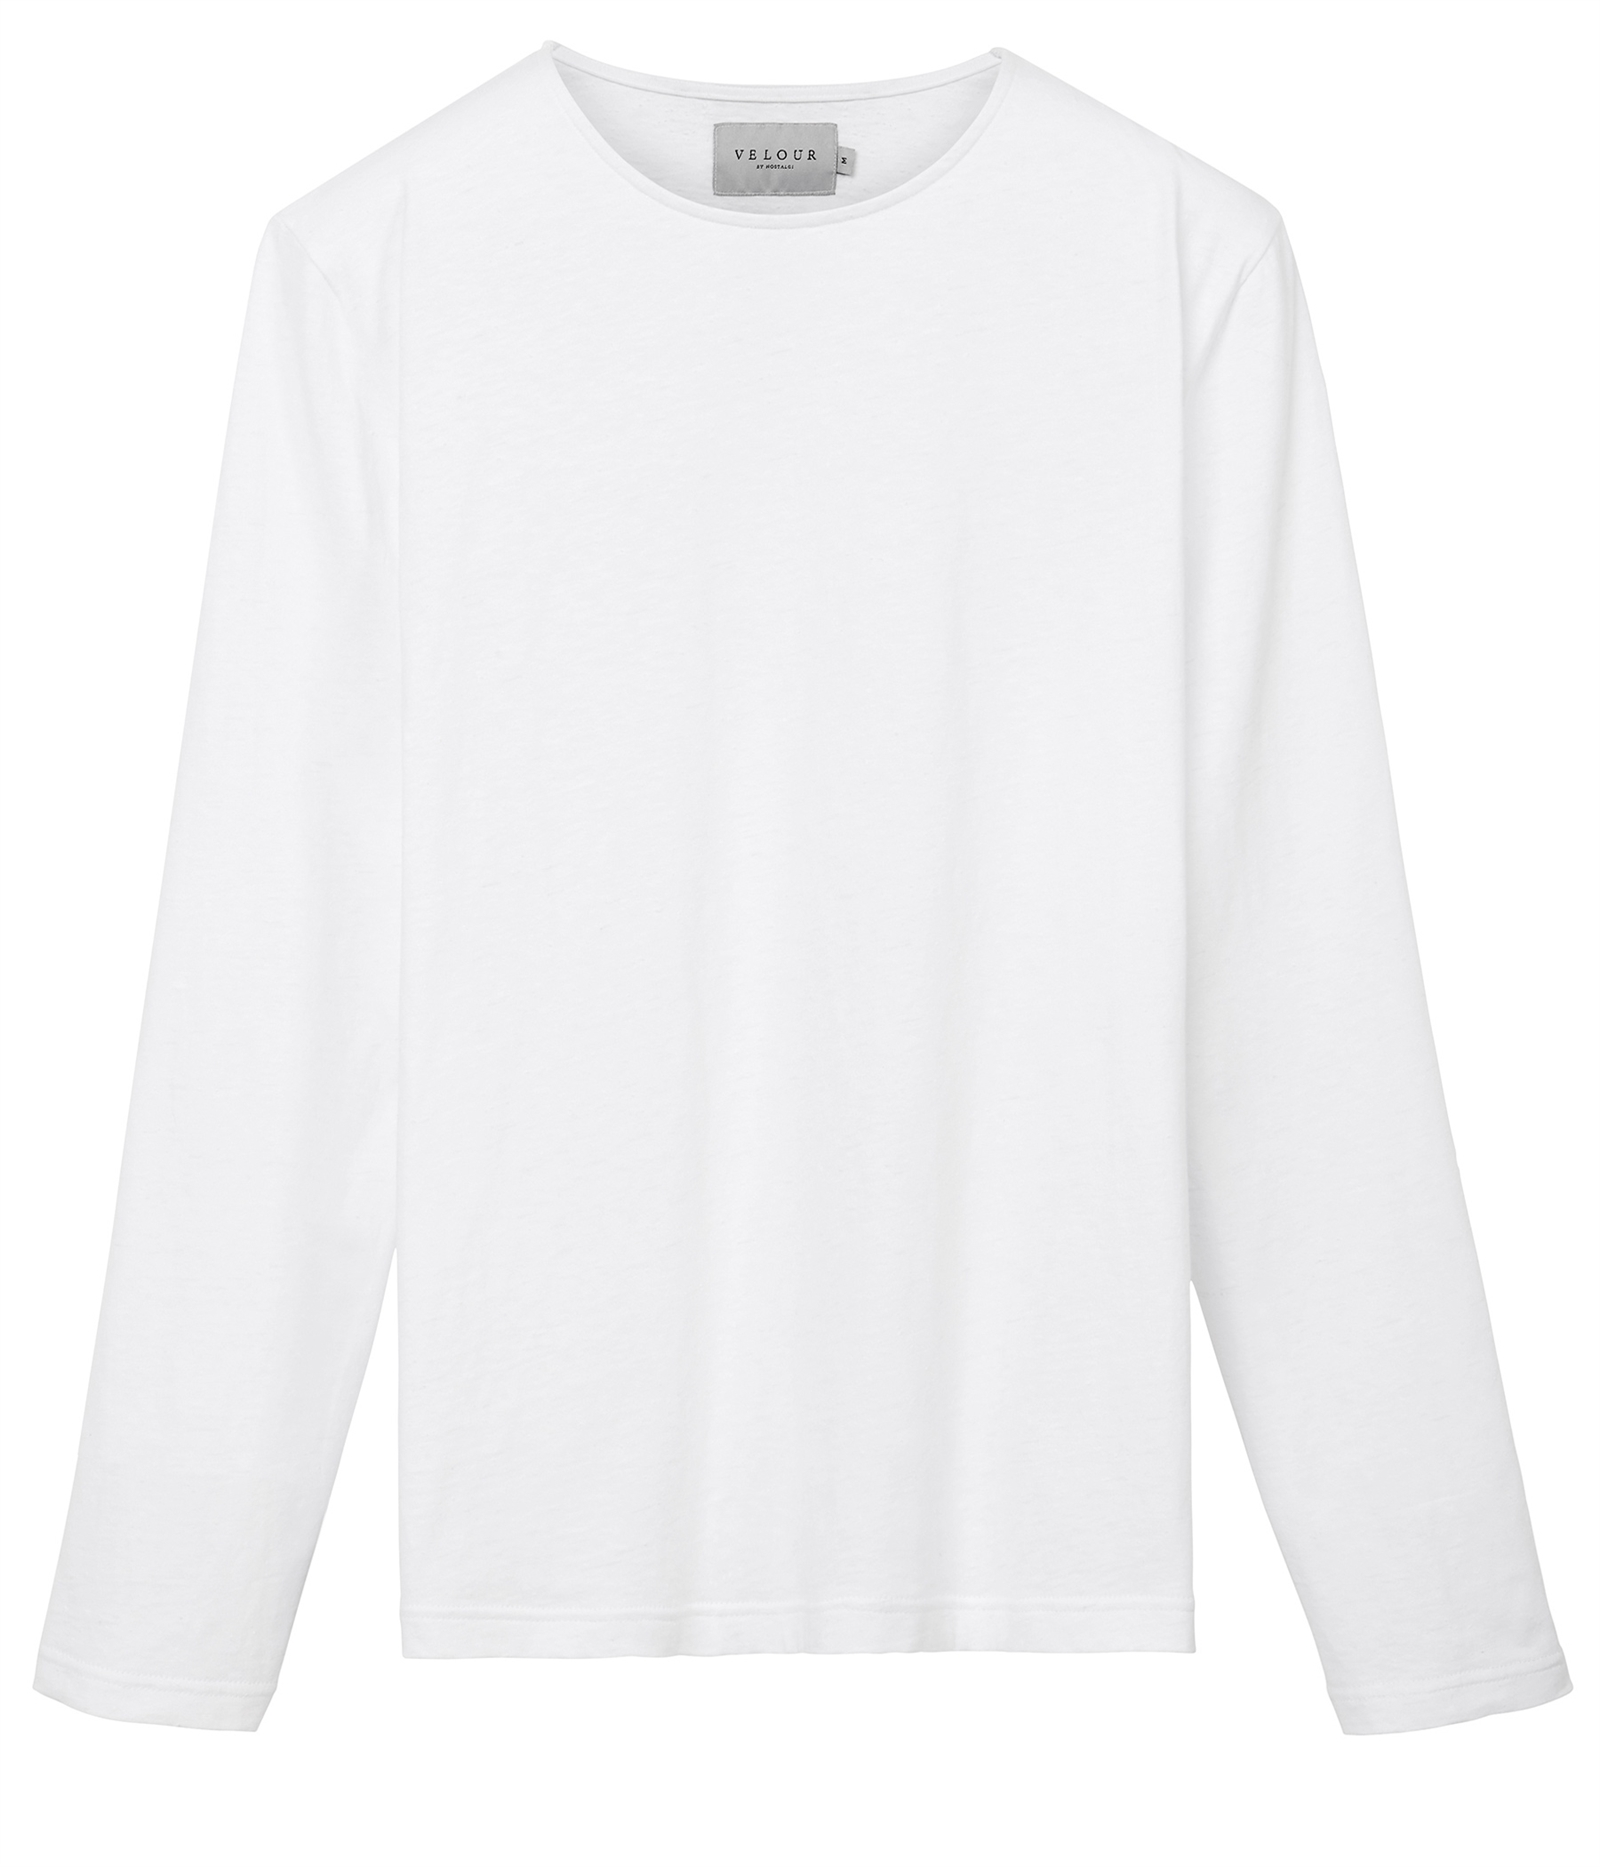 VBN_The_Swan_Plain_LS_Tee_Jersey_White_3803100284_1800x2100